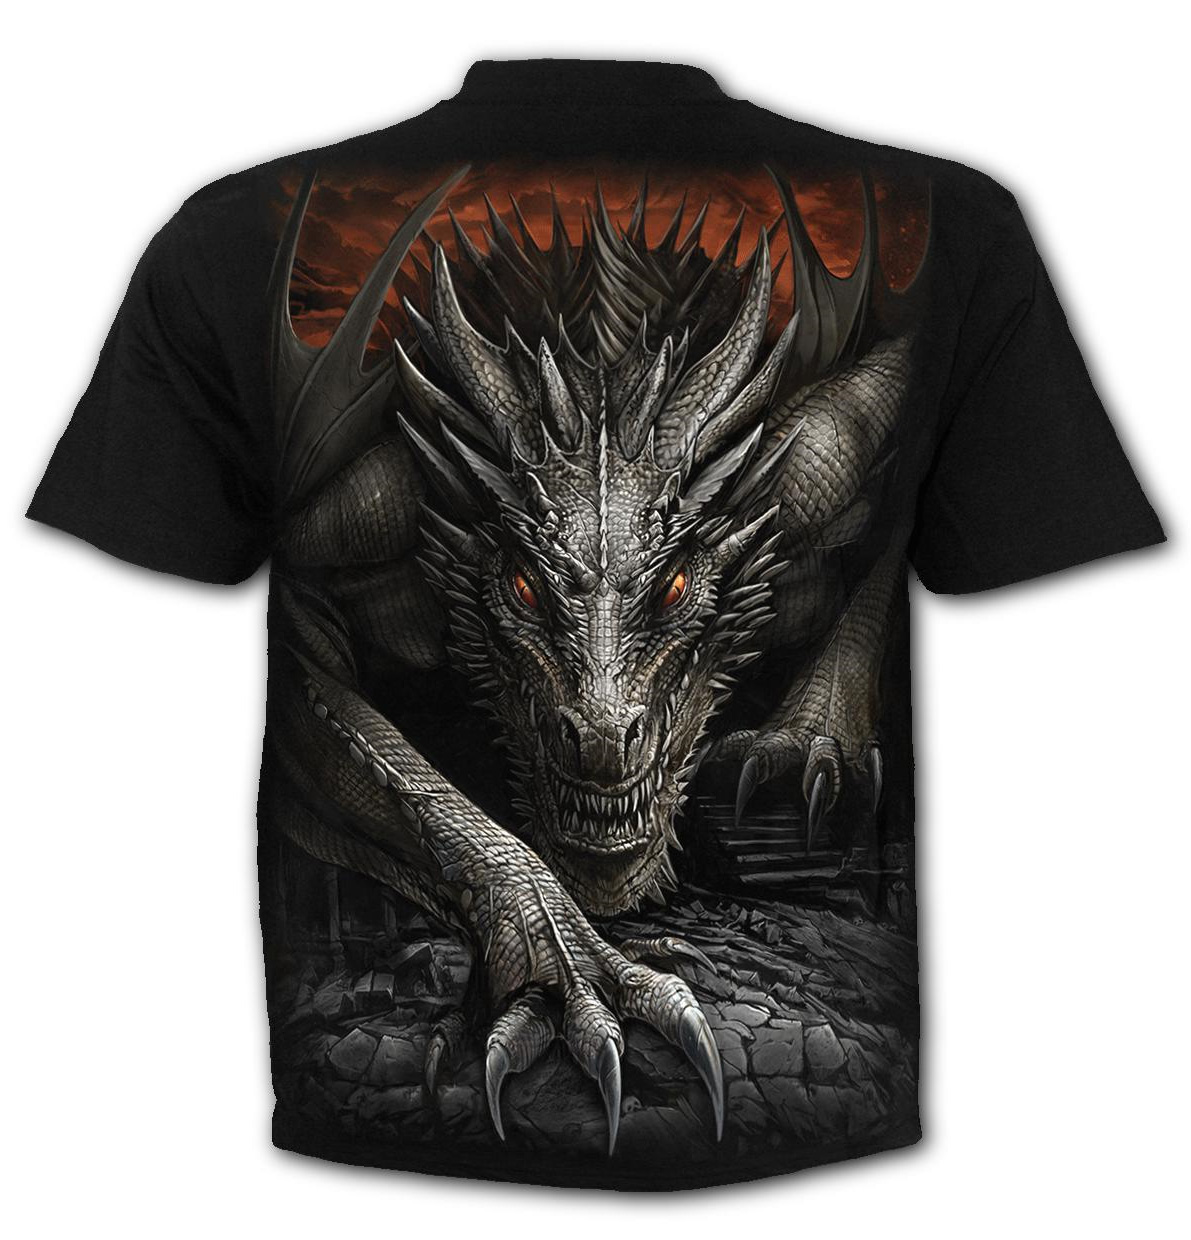 SPIRAL-Direct-Unisex-T-Shirt-Biker-Goth-MAJESTIC-DRACO-Dragon-All-Sizes thumbnail 5